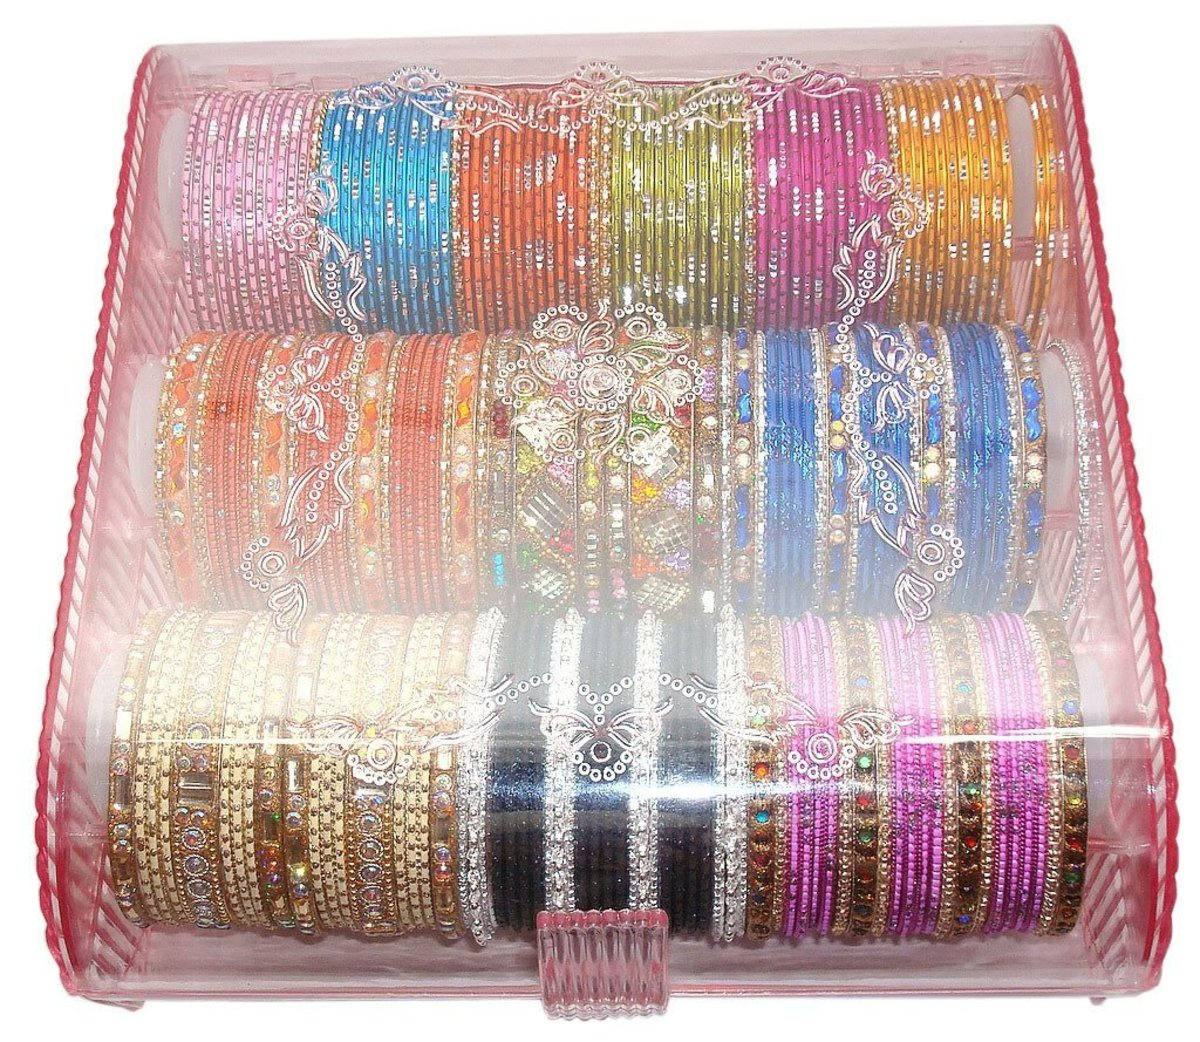 Idea#3: Storing bangles in a bangles organizer